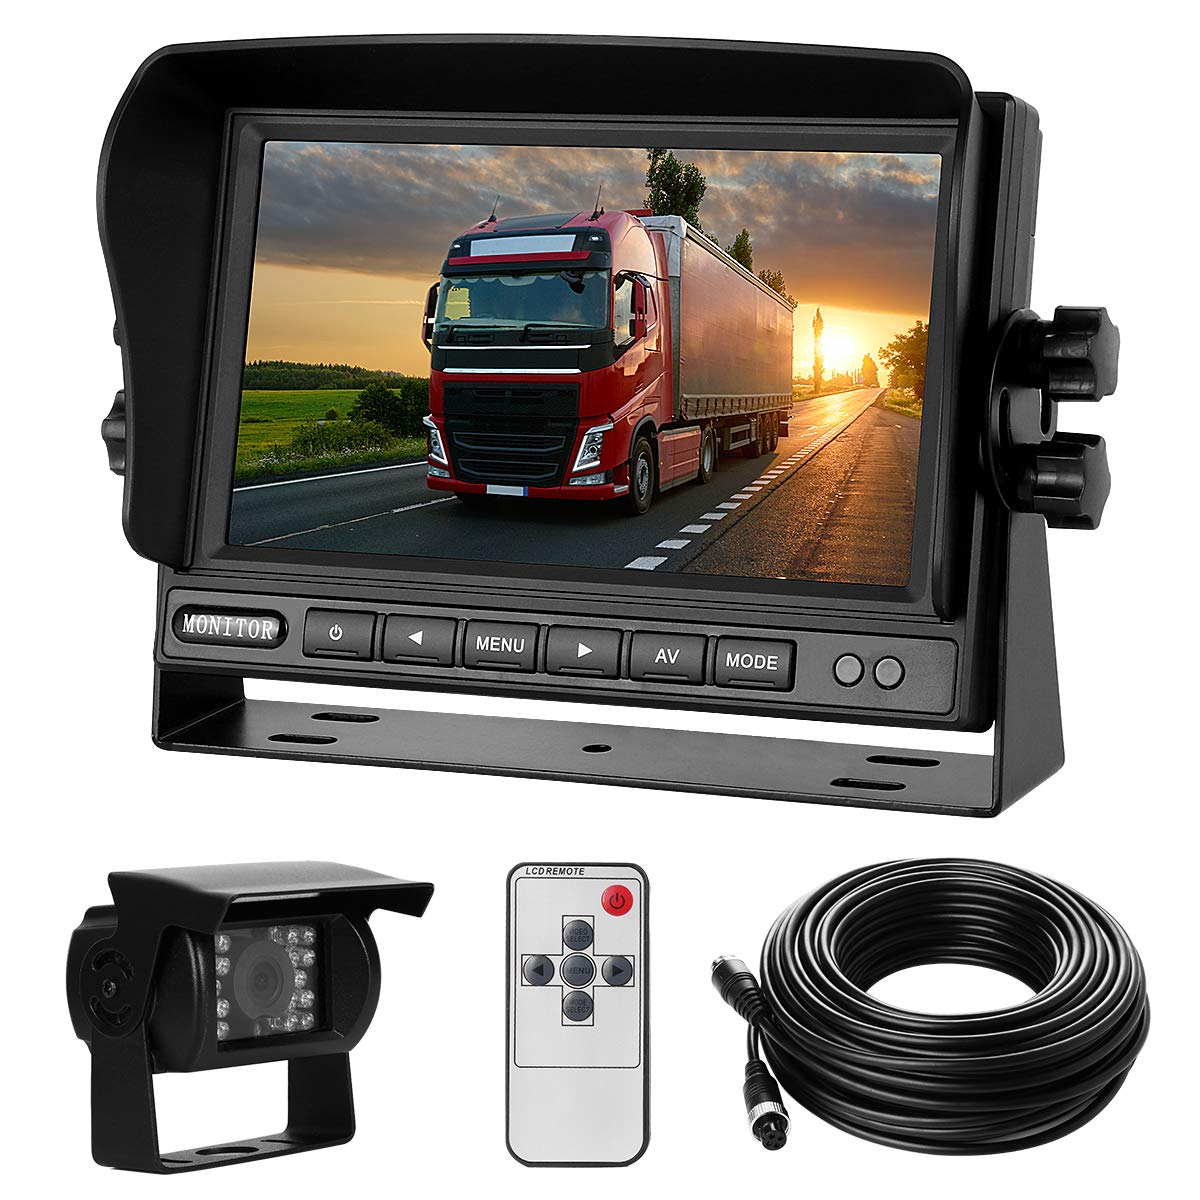 Backup Camera System Kit 7'' LCD Reversing Monitor+170 ° Wide Angle, 18 IR Night Vision,IP68 Waterproof Rear View Back Up Camera for Truck/RV/Trailer/Bus/Vans/Vehicle.